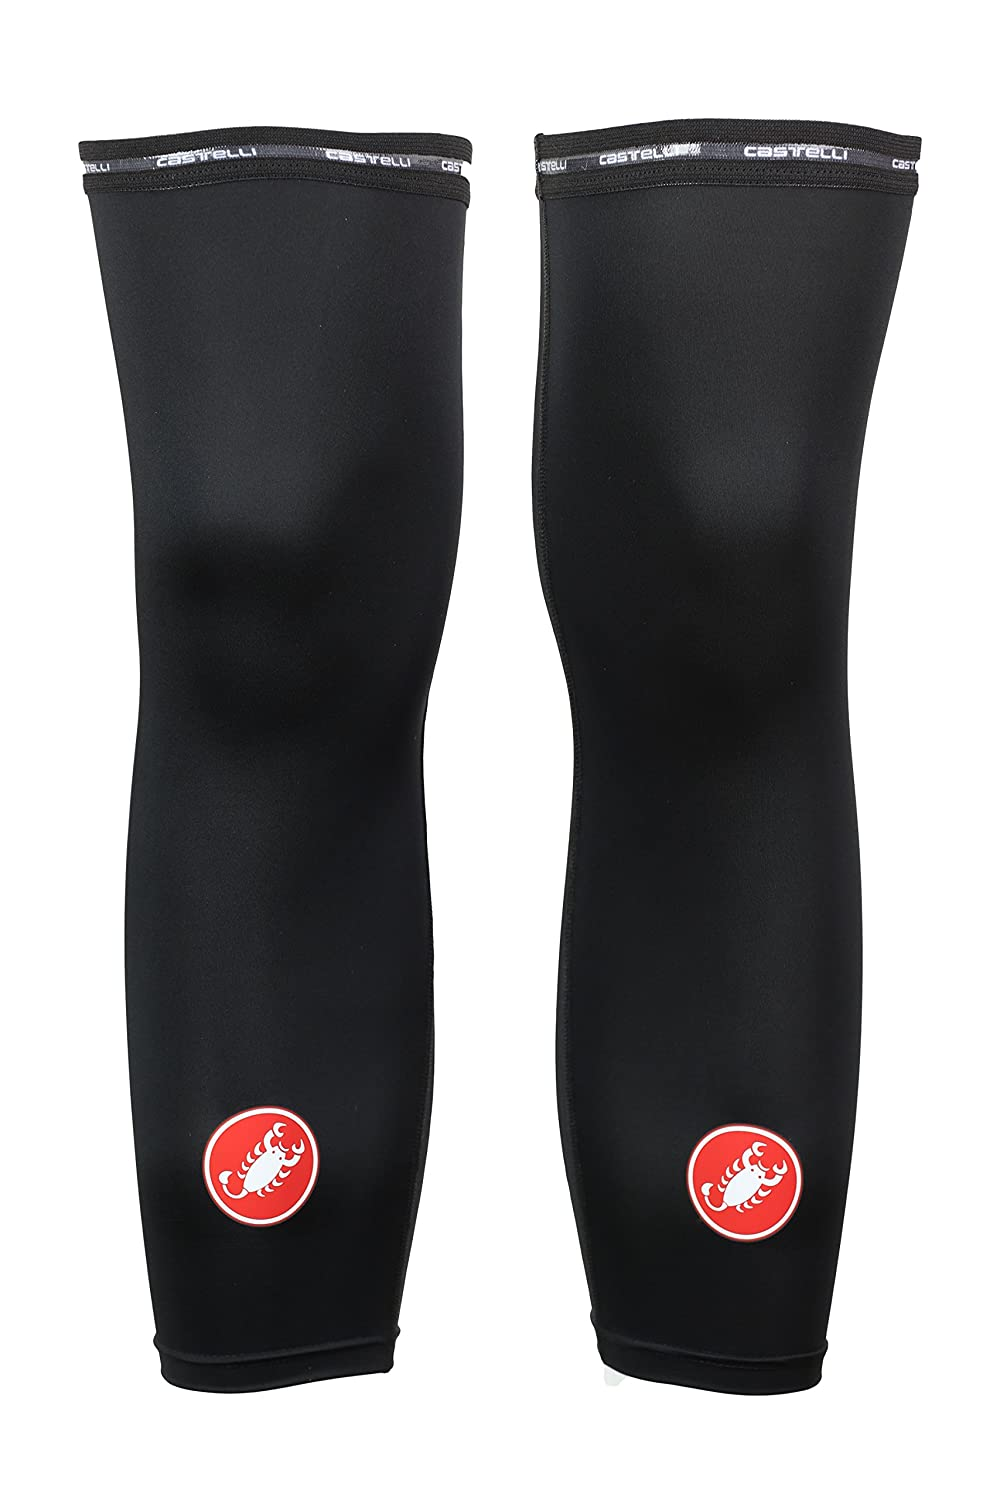 Castelli UPF 50 + Light Knee Skins Legwarmer